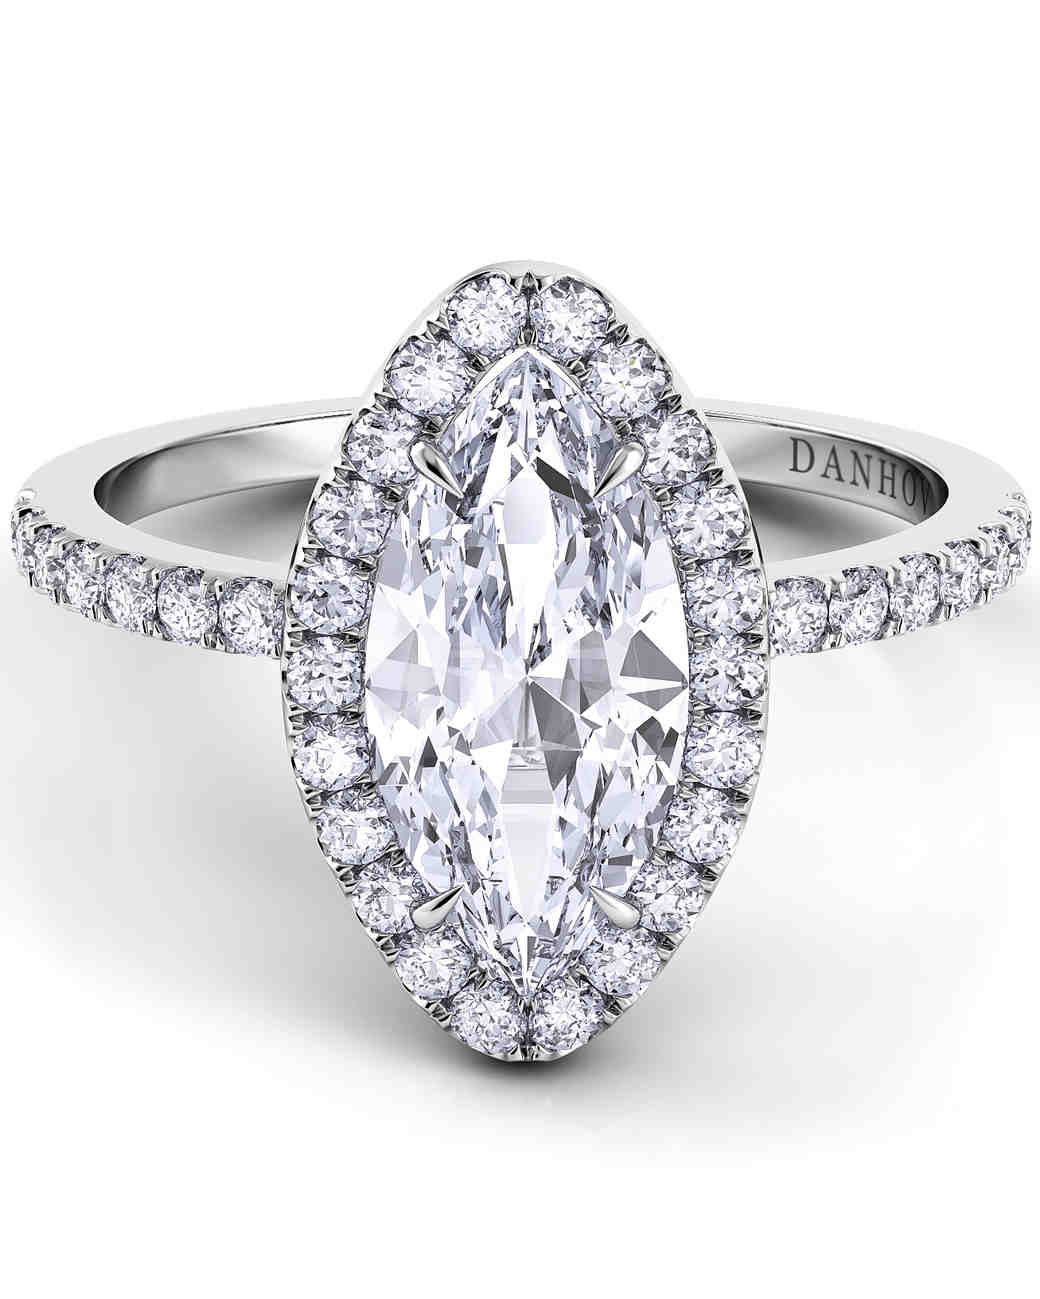 Marquise Cut Diamond Engagement Rings – A Favorite Choice For Top Celebrities Marquise Cut Diamond Engagement Rings – A Favorite Choice For Top Celebrities new foto